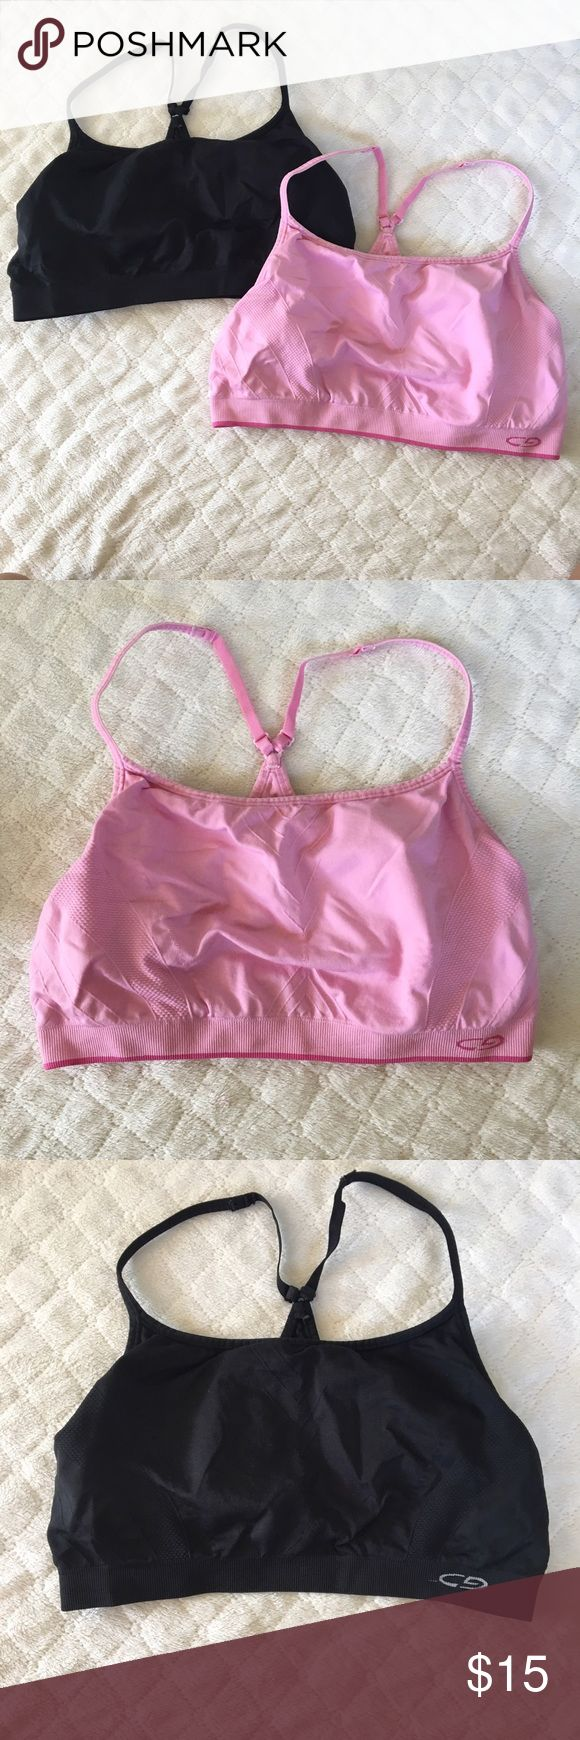 Two C9 champion sports bras!! Pink & back Sz XL Super cute C9 champion sports bras bundle! Size XL. Pink and black C9 Champion  Tops Muscle Tees